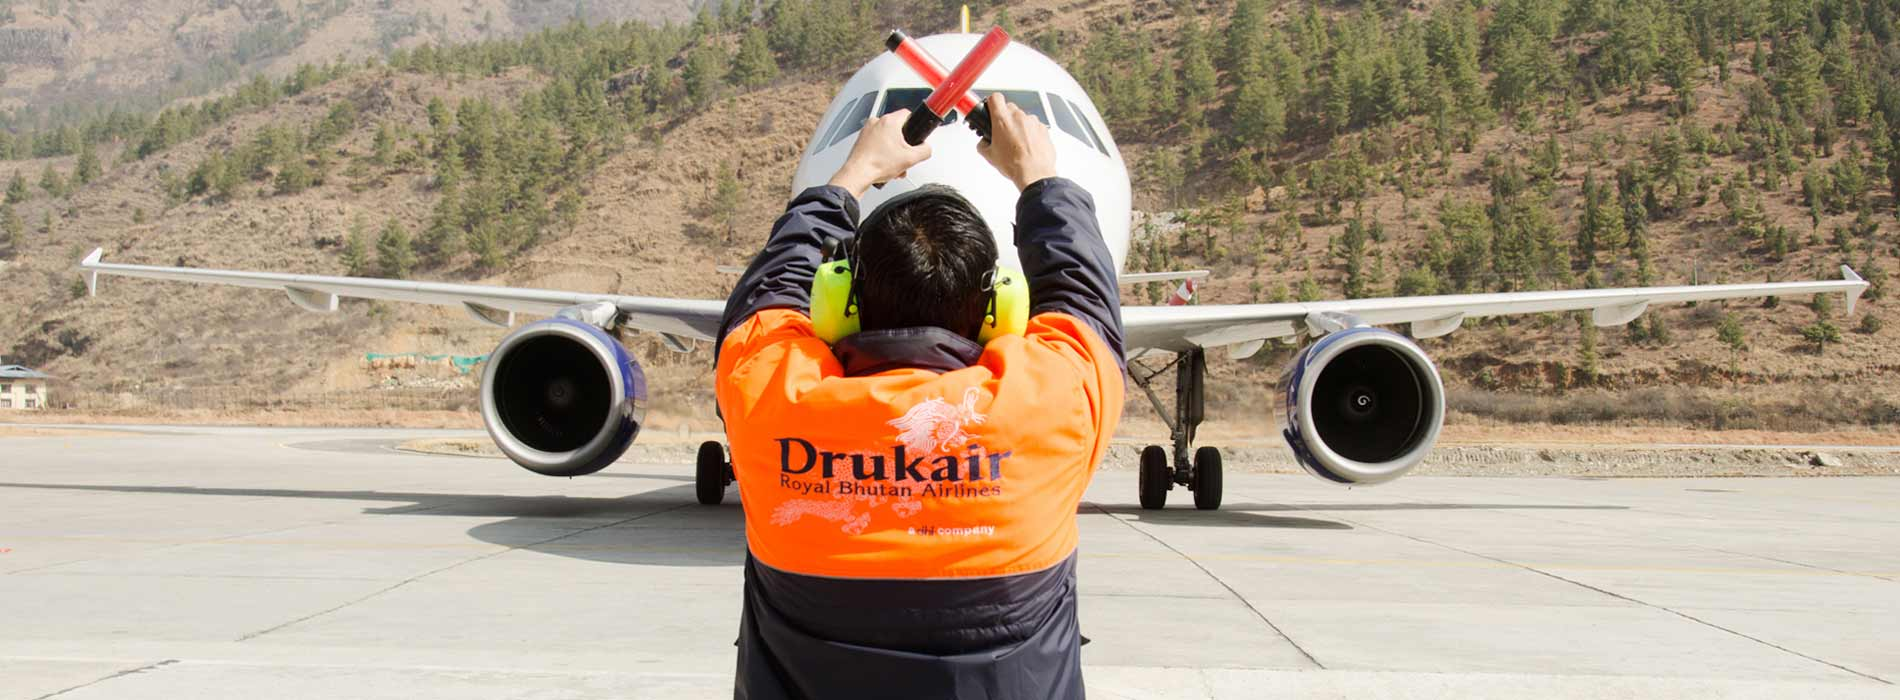 Drukair- Royal Bhutan Airlines